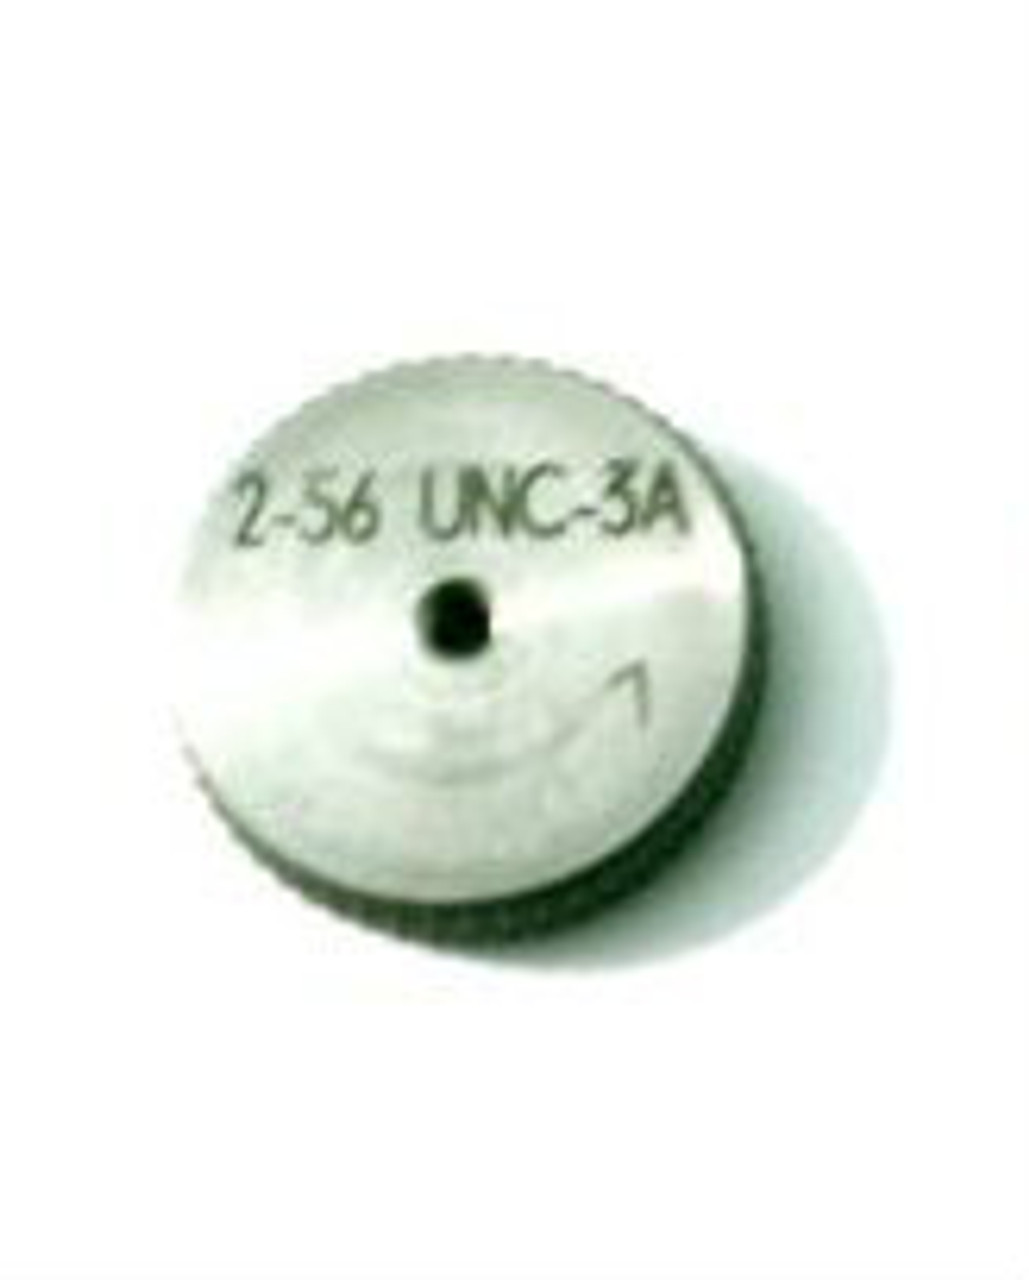 """Thread Ring Gage 2-56 class UNC-3A; """"Go"""" member Precision Thread Gage made of High Speed Steel then hardened. Picture is representative of part,  Brand ESO made for us in Switzerland."""